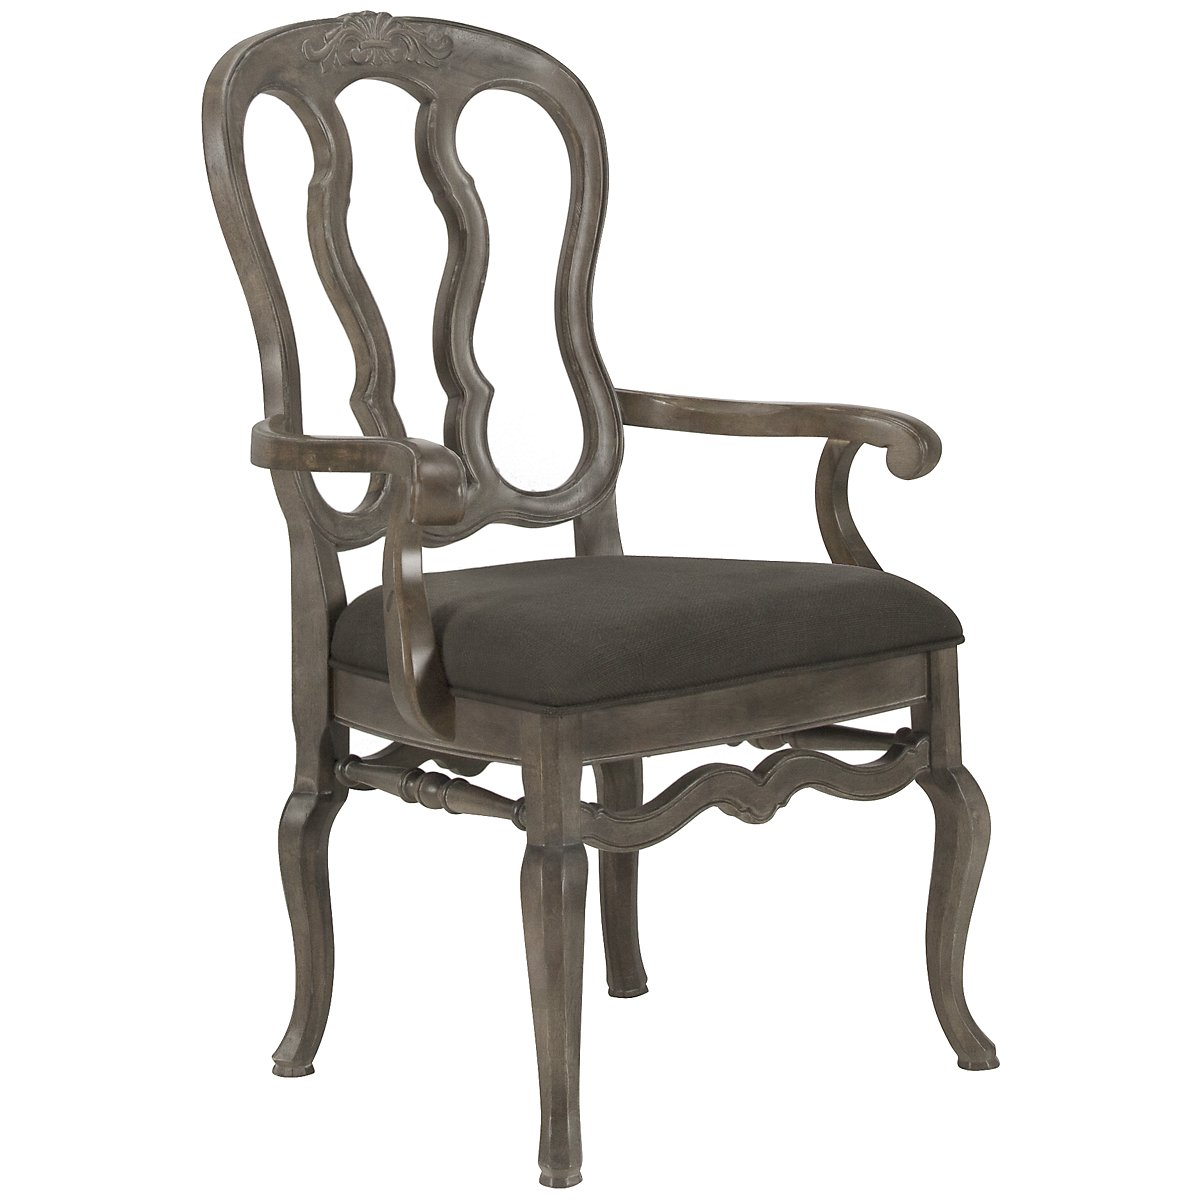 Belgian Oak Light Tone Wood Arm Chair